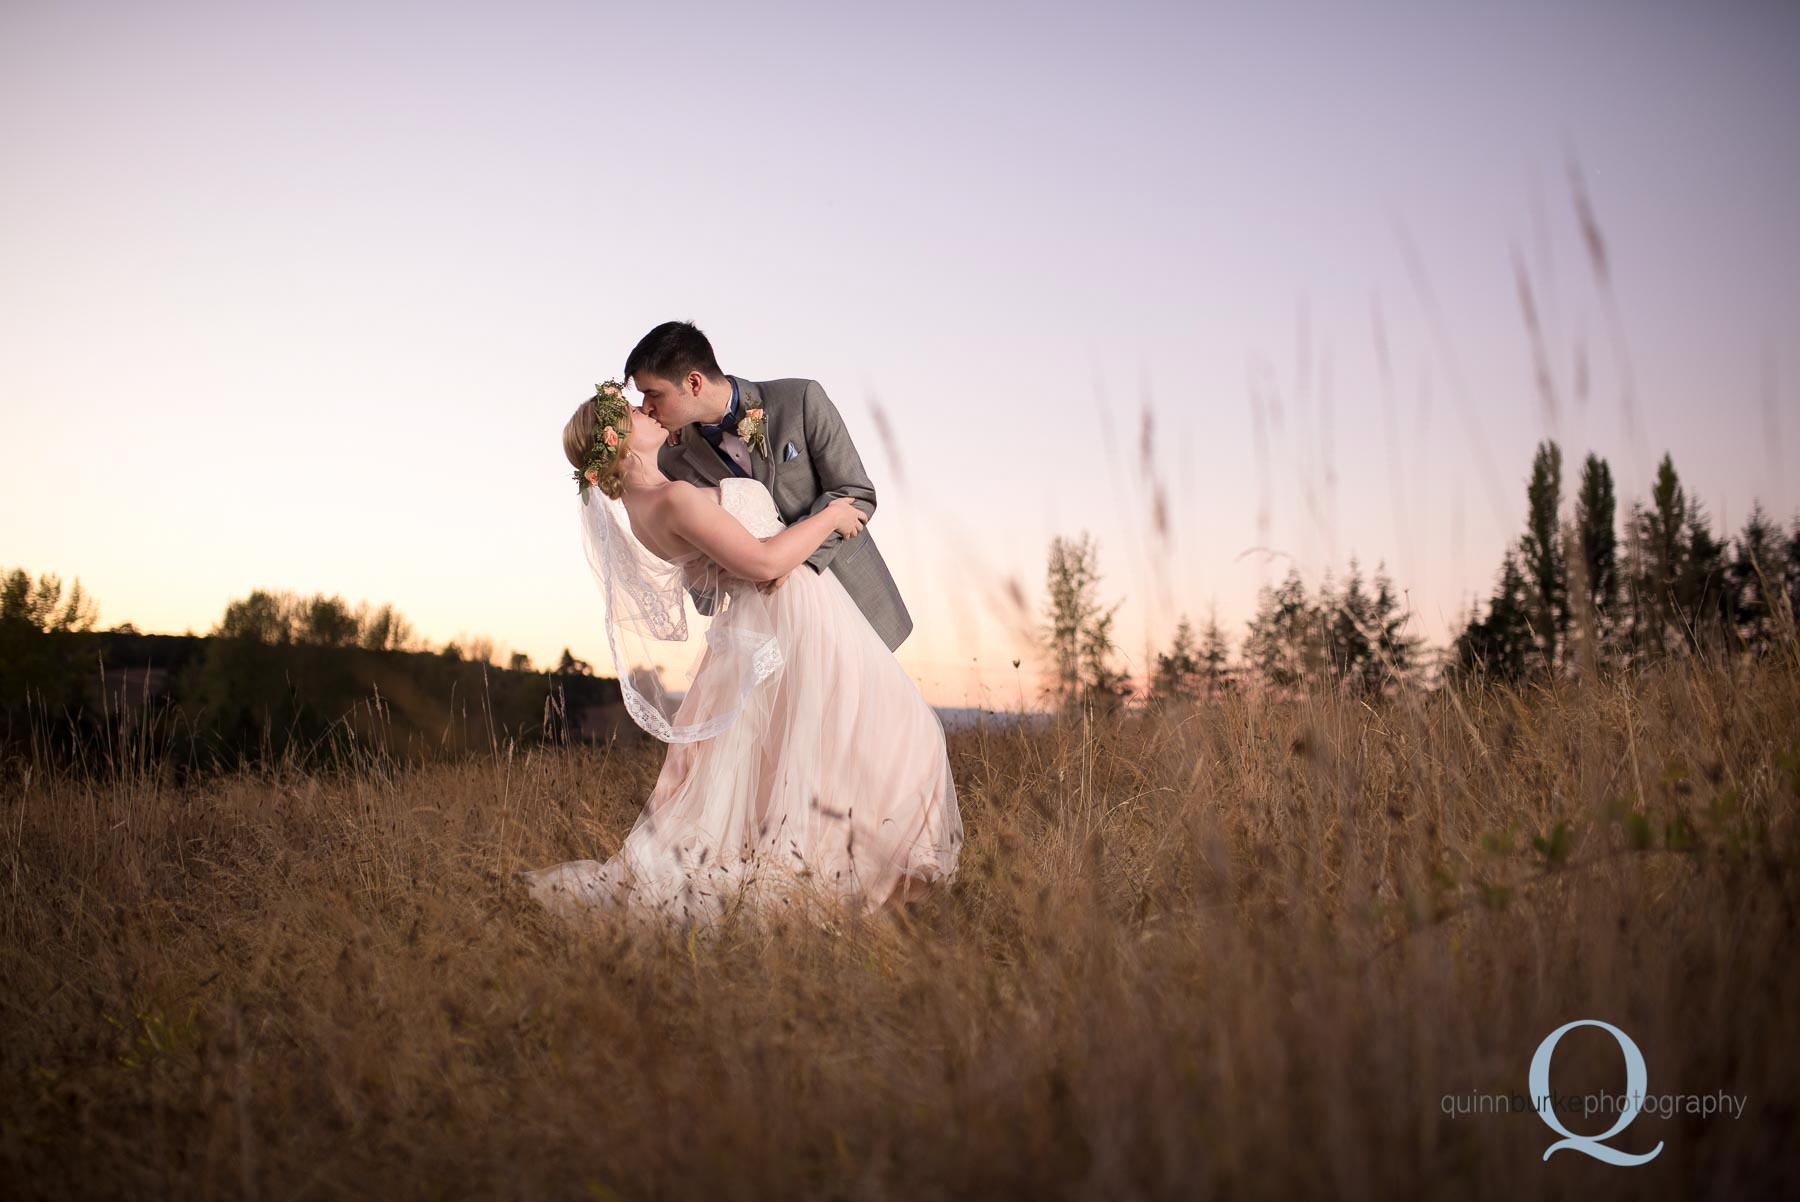 Perryhill Farm wedding oregon